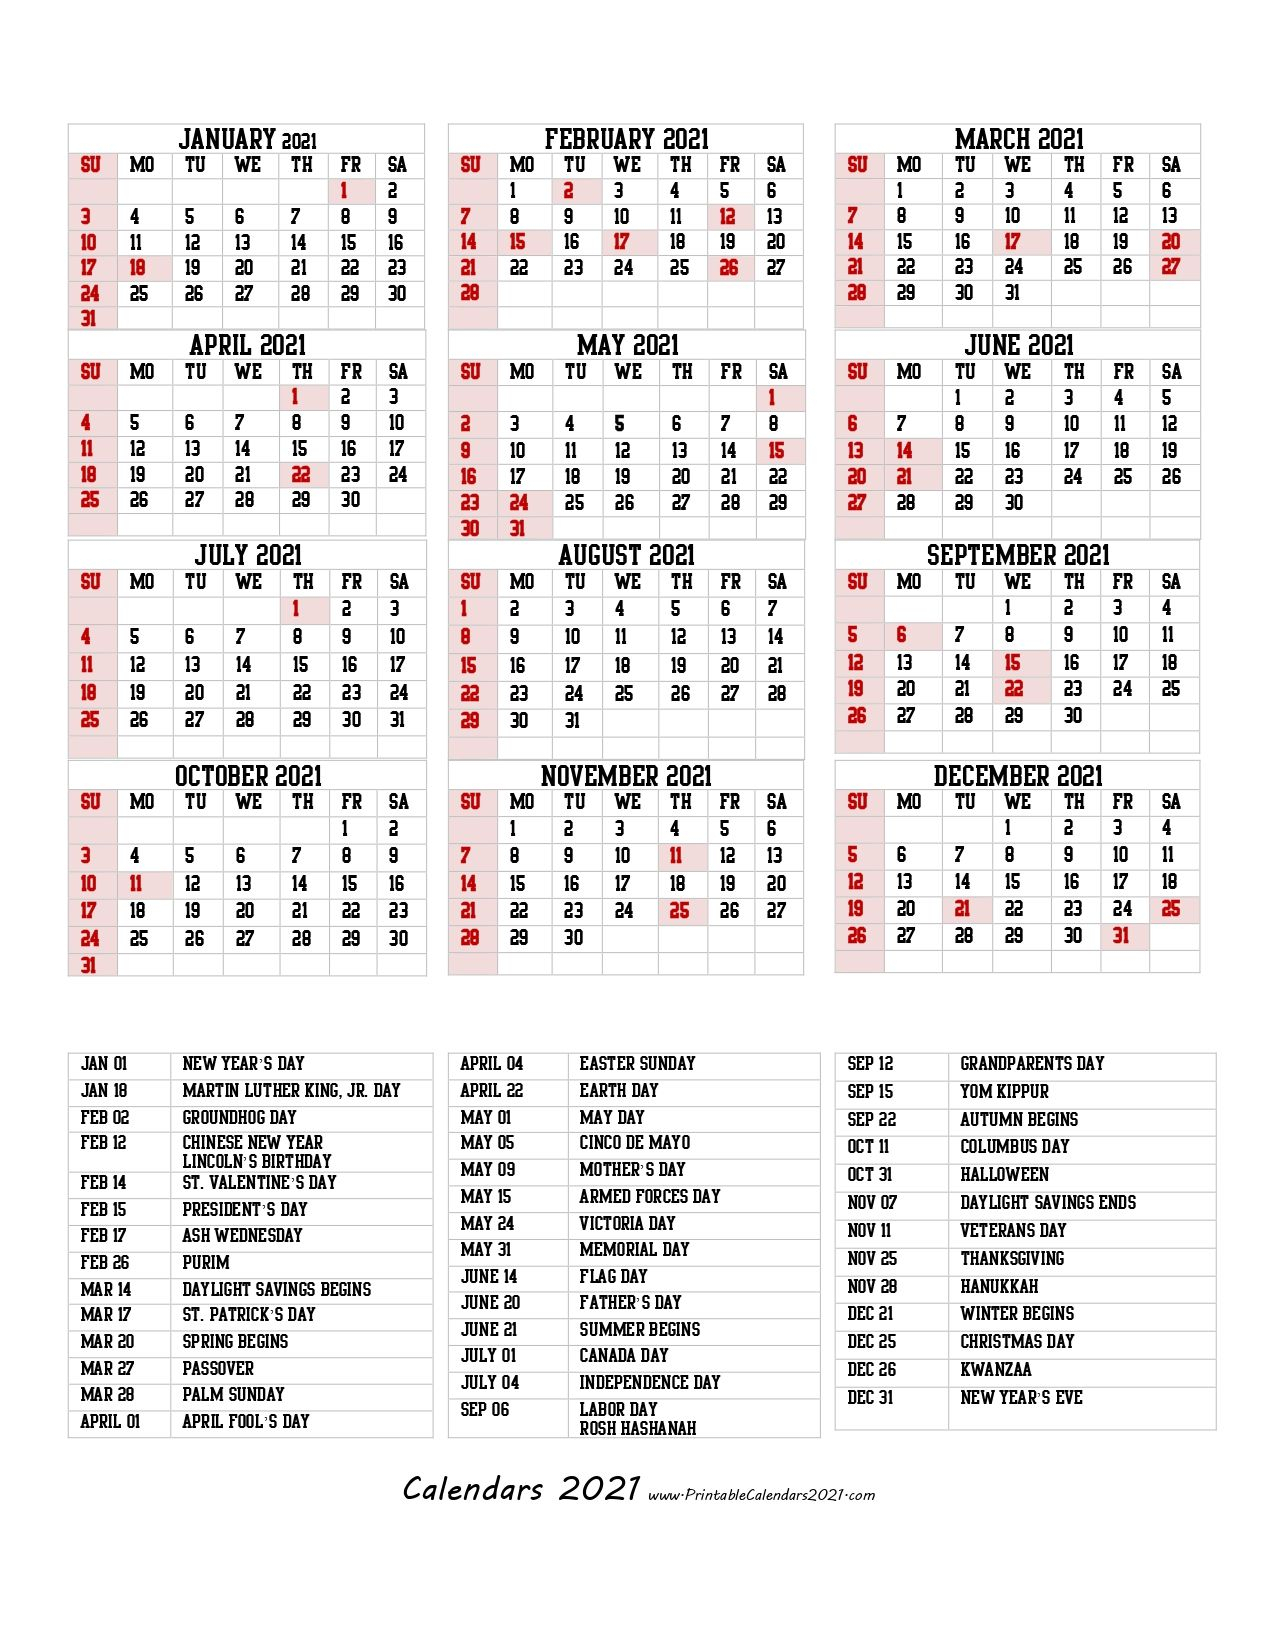 68+ Design Printable 2021 Calendar One Page With Holidays in Waterproof Calendars Printable 2021